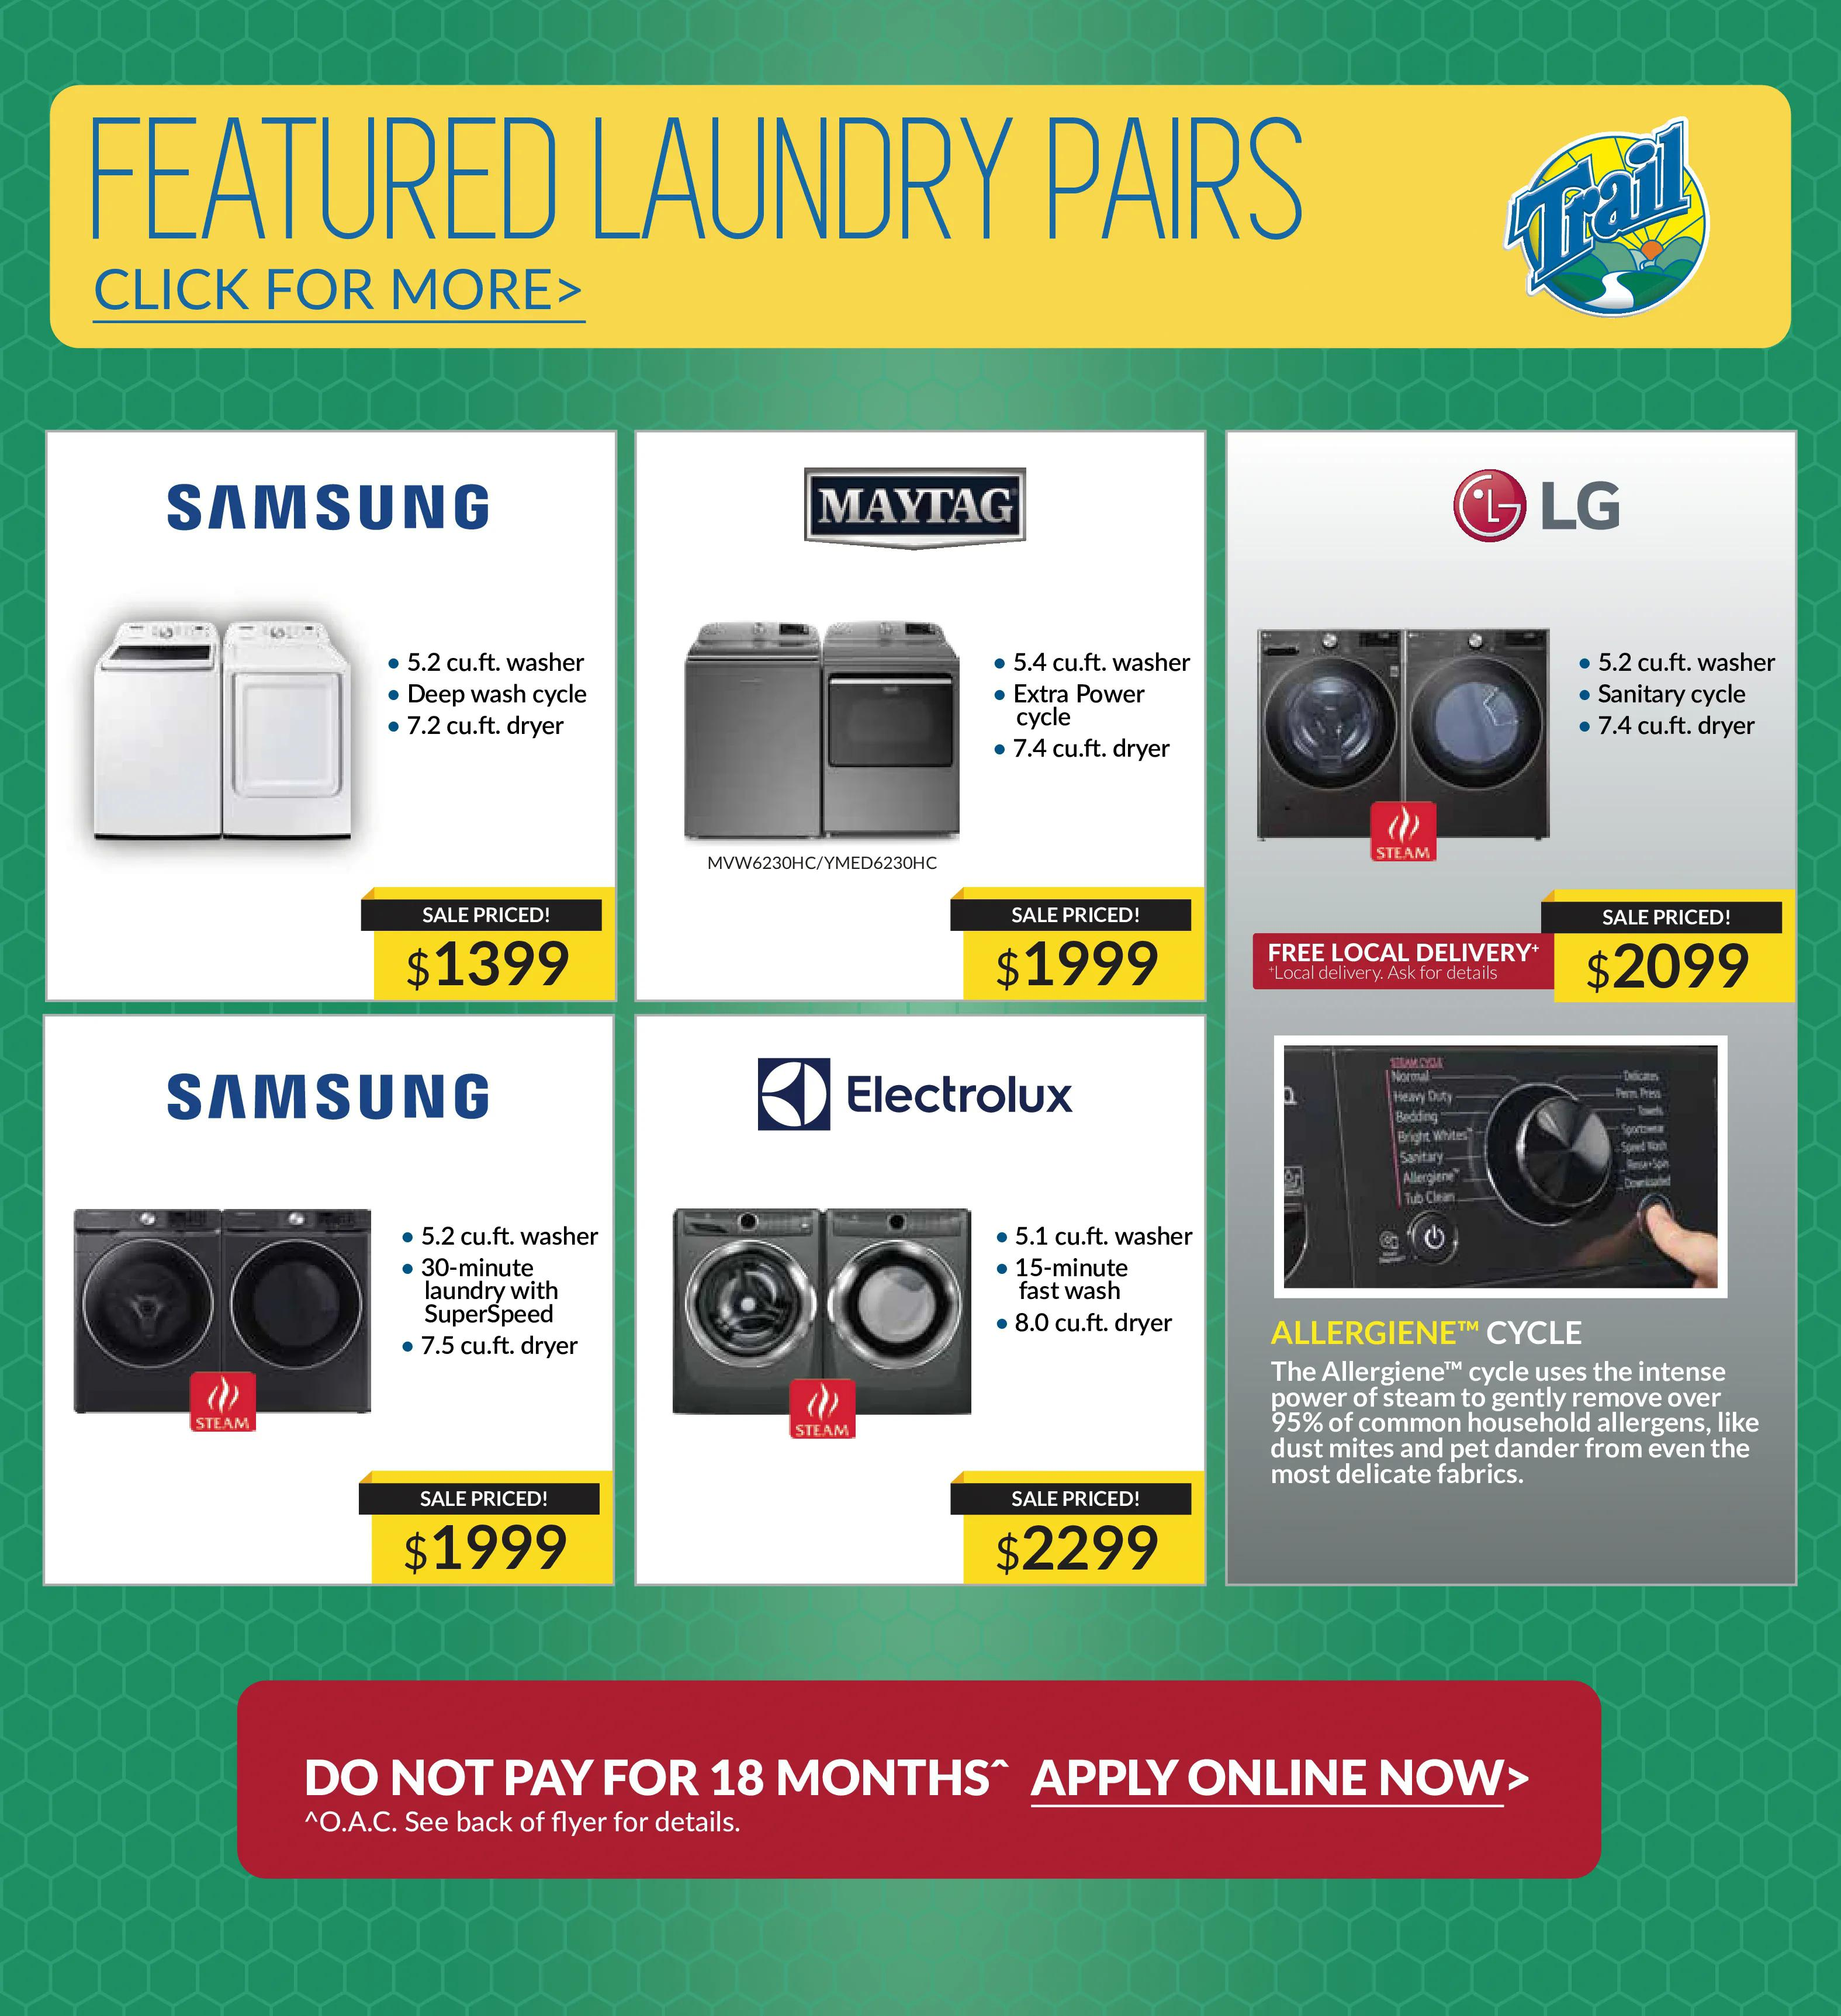 Trail Appliances - Weekly Flyer Specials - Page 7